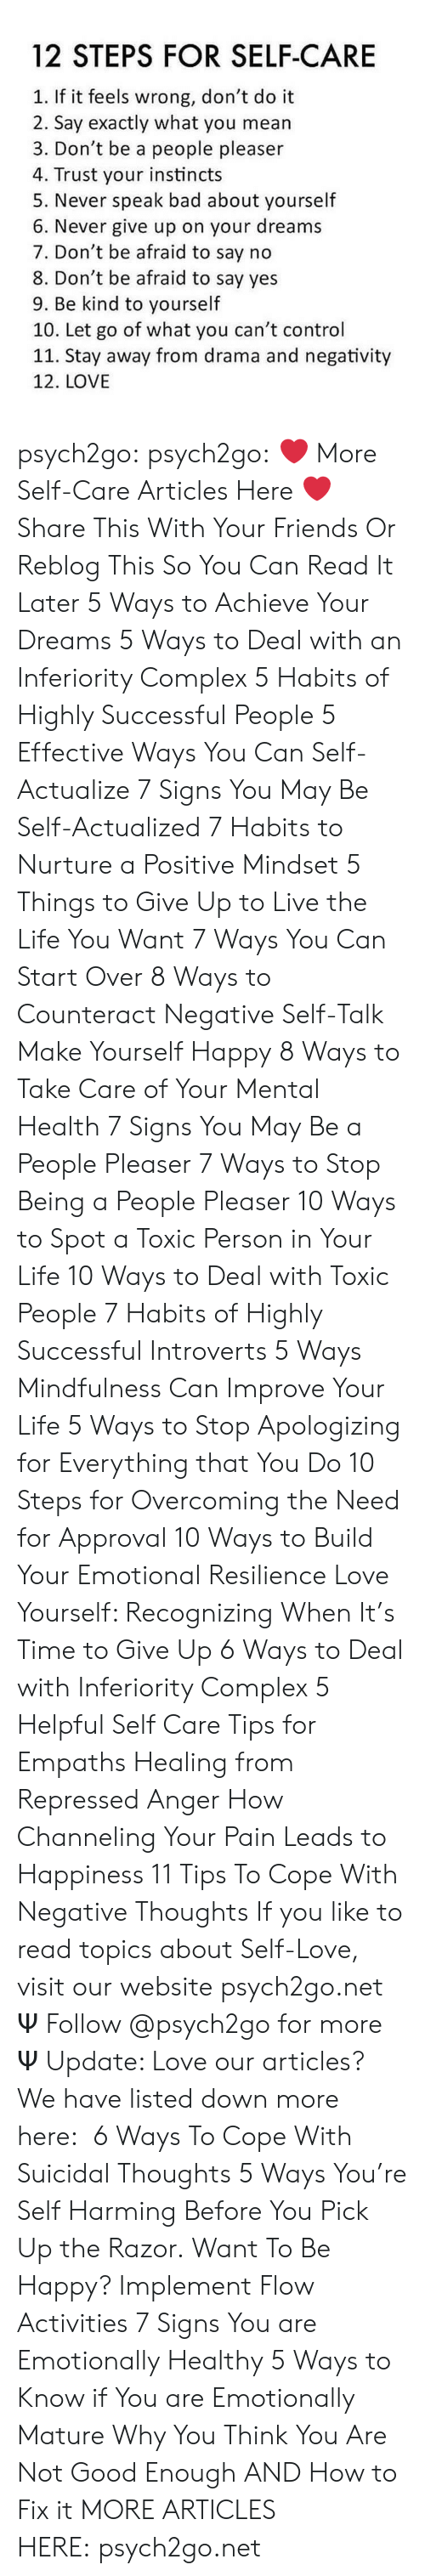 cope: 12 STEPS FOR SELF-CARE  1. If it feels wrong, don't do it  2. Say exactly what you mean  3. Don't be a people pleaser  4. Trust your instincts  5. Never speak bad about yourself  6. Never give up on your dreams  7. Don't be afraid to say no  8. Don't be afraid to say yes  9. Be kind to yourself  10. Let go of what you can't control  11. Stay away from drama and negativity  12. LOVE psych2go: psych2go:  ❤ More Self-Care Articles Here ❤ Share This With Your Friends Or Reblog This So You Can Read It Later 5 Ways to Achieve Your Dreams 5 Ways to Deal with an Inferiority Complex 5 Habits of Highly Successful People 5 Effective Ways You Can Self-Actualize 7 Signs You May Be Self-Actualized 7 Habits to Nurture a Positive Mindset 5 Things to Give Up to Live the Life You Want 7 Ways You Can Start Over 8 Ways to Counteract Negative Self-Talk Make Yourself Happy 8 Ways to Take Care of Your Mental Health 7 Signs You May Be a People Pleaser 7 Ways to Stop Being a People Pleaser 10 Ways to Spot a Toxic Person in Your Life 10 Ways to Deal with Toxic People 7 Habits of Highly Successful Introverts 5 Ways Mindfulness Can Improve Your Life 5 Ways to Stop Apologizing for Everything that You Do 10 Steps for Overcoming the Need for Approval 10 Ways to Build Your Emotional Resilience Love Yourself: Recognizing When It's Time to Give Up 6 Ways to Deal with Inferiority Complex 5 Helpful Self Care Tips for Empaths Healing from Repressed Anger How Channeling Your Pain Leads to Happiness 11 Tips To Cope With Negative Thoughts If you like to read topics about Self-Love, visit our website psych2go.net Ψ Follow @psych2go​ for more Ψ  Update: Love our articles? We have listed down more here:  6 Ways To Cope With Suicidal Thoughts 5 Ways You're Self Harming Before You Pick Up the Razor. Want To Be Happy? Implement Flow Activities 7 Signs You are Emotionally Healthy 5 Ways to Know if You are Emotionally Mature Why You Think You Are Not Good Enough AND How to Fix it MORE ARTICLES HERE: psych2go.net